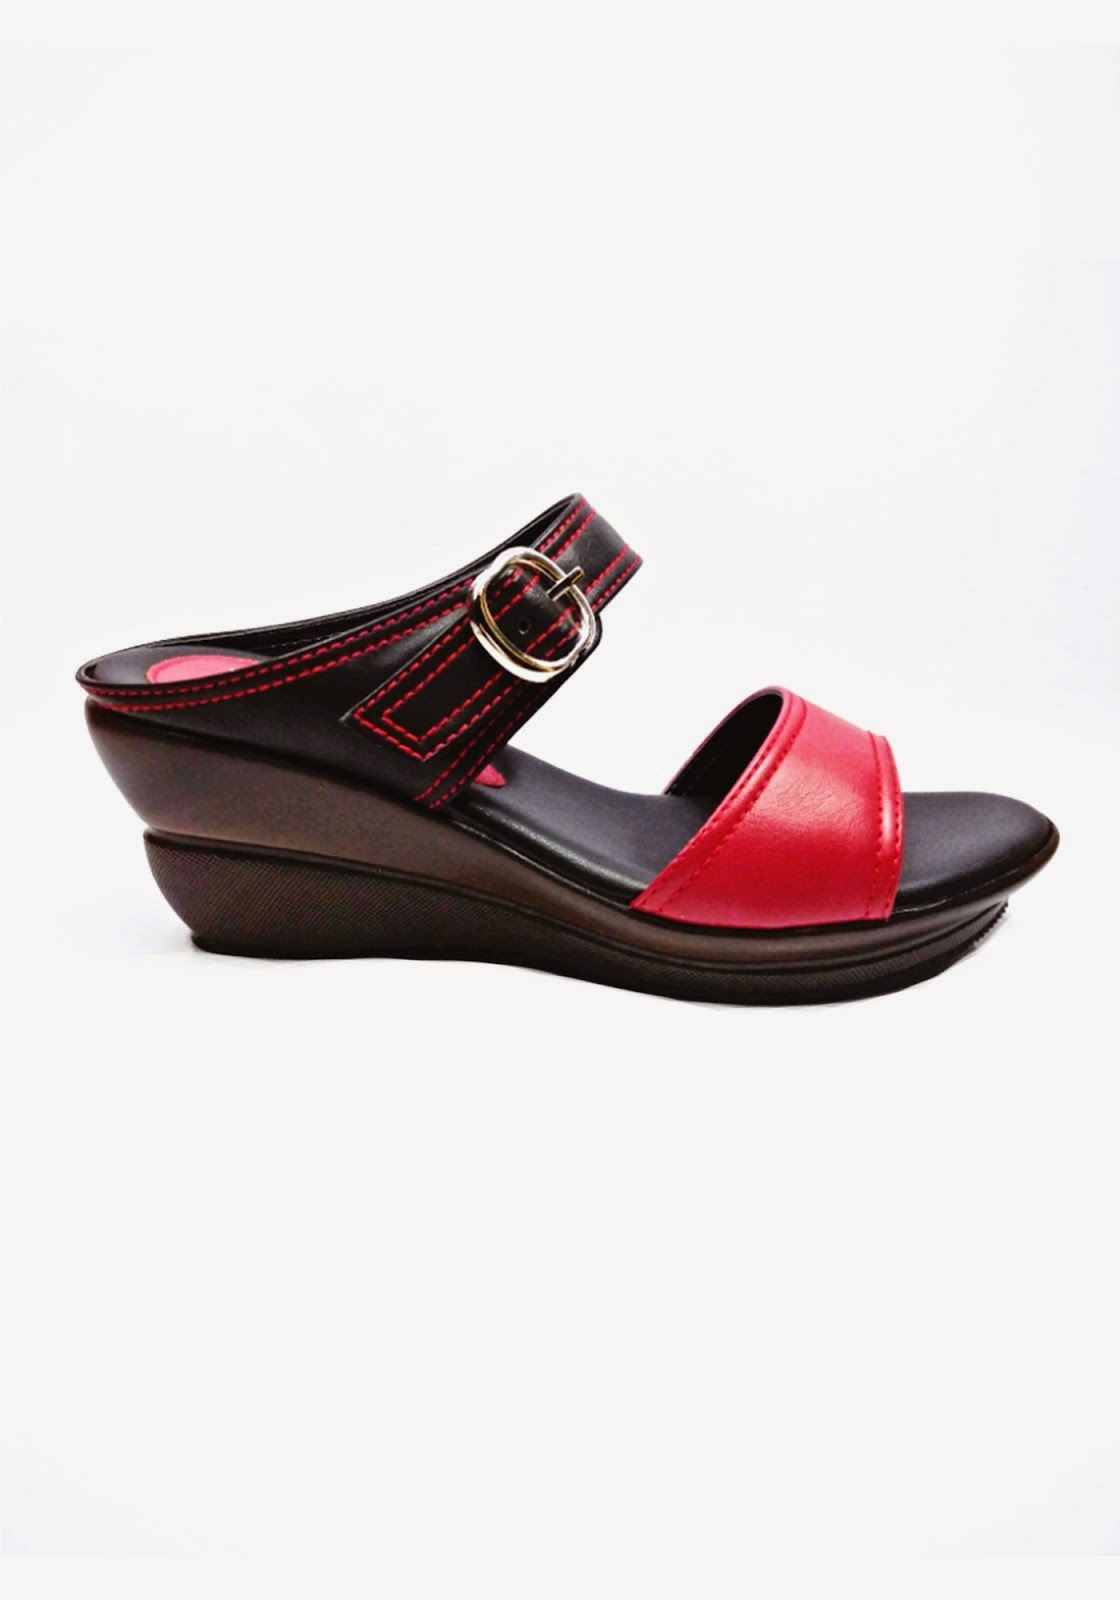 Malaysia shoes online shopping